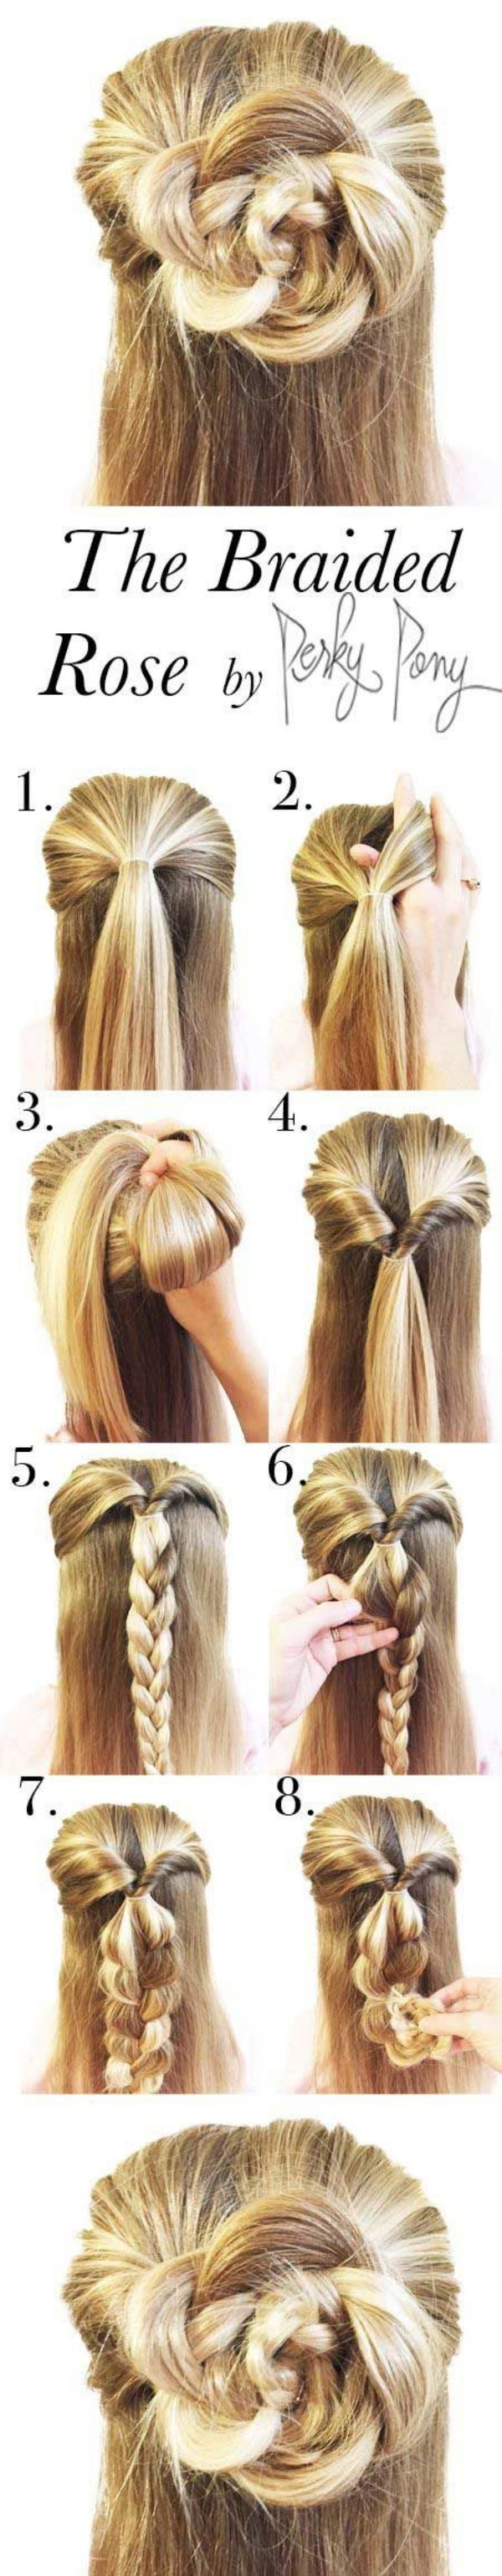 THE BRAIDED ROSE BUN BY PERKY PONY | STEP BY STEP HAIRSTYLES | HAIRSTYLE TUTORIALS | EASY HAIRSTYLES | 17 Hairstyles That Can be Done in 3 Minutes